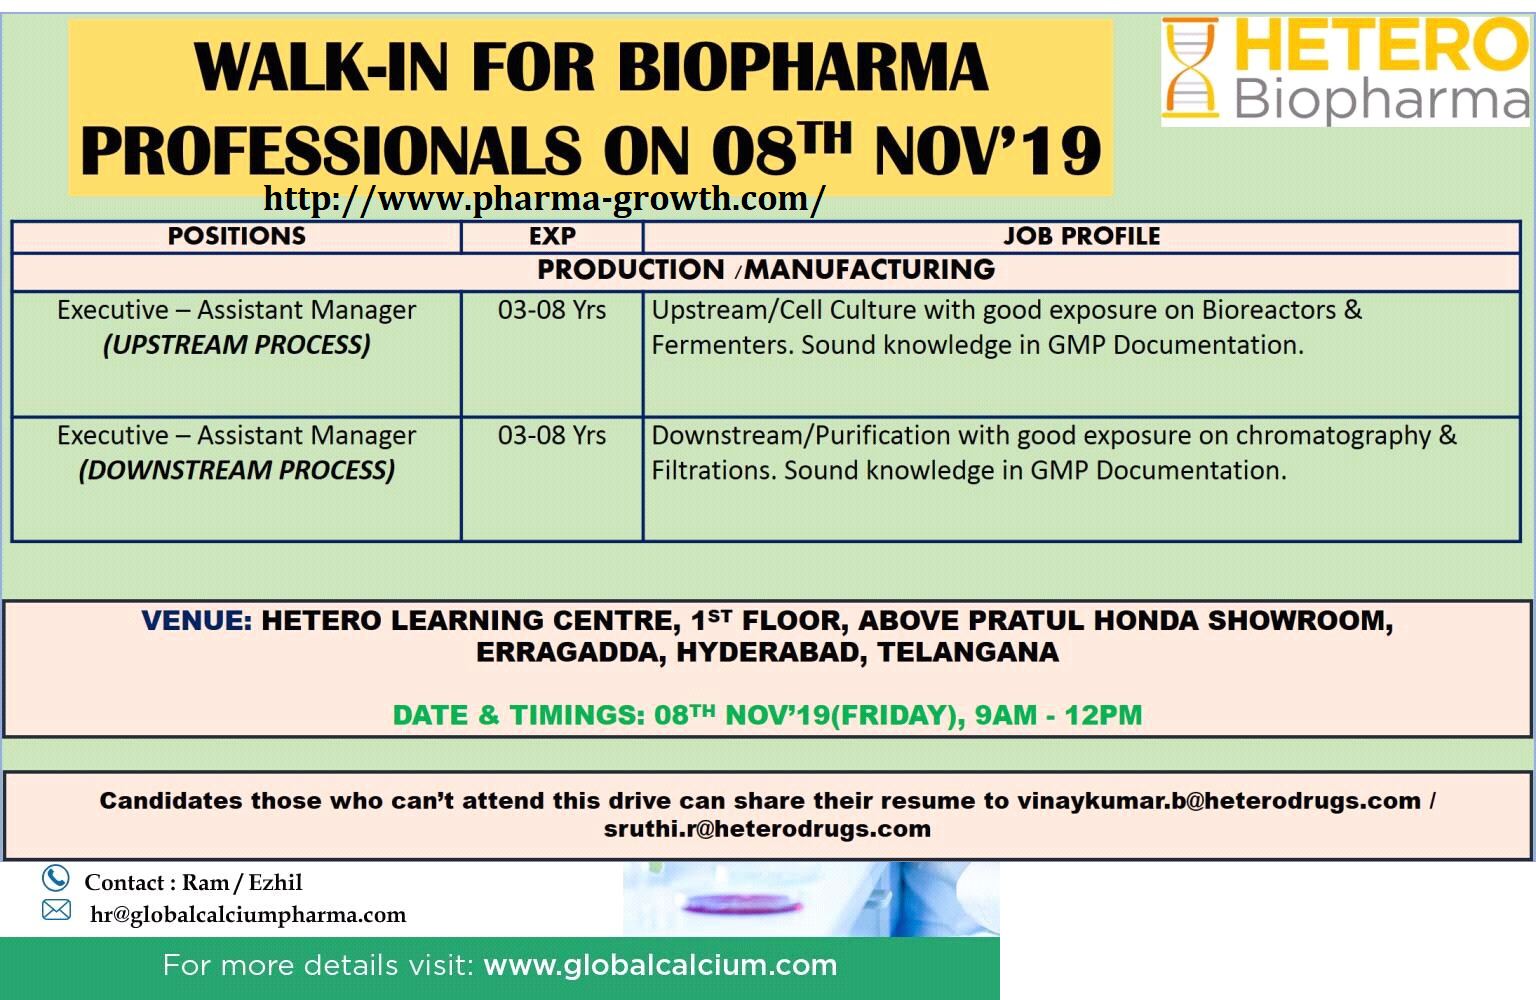 HETERO Biopharma – Walk-In Drive for Experienced Production / Manufacturing Professionals on 8th Nov' 2019